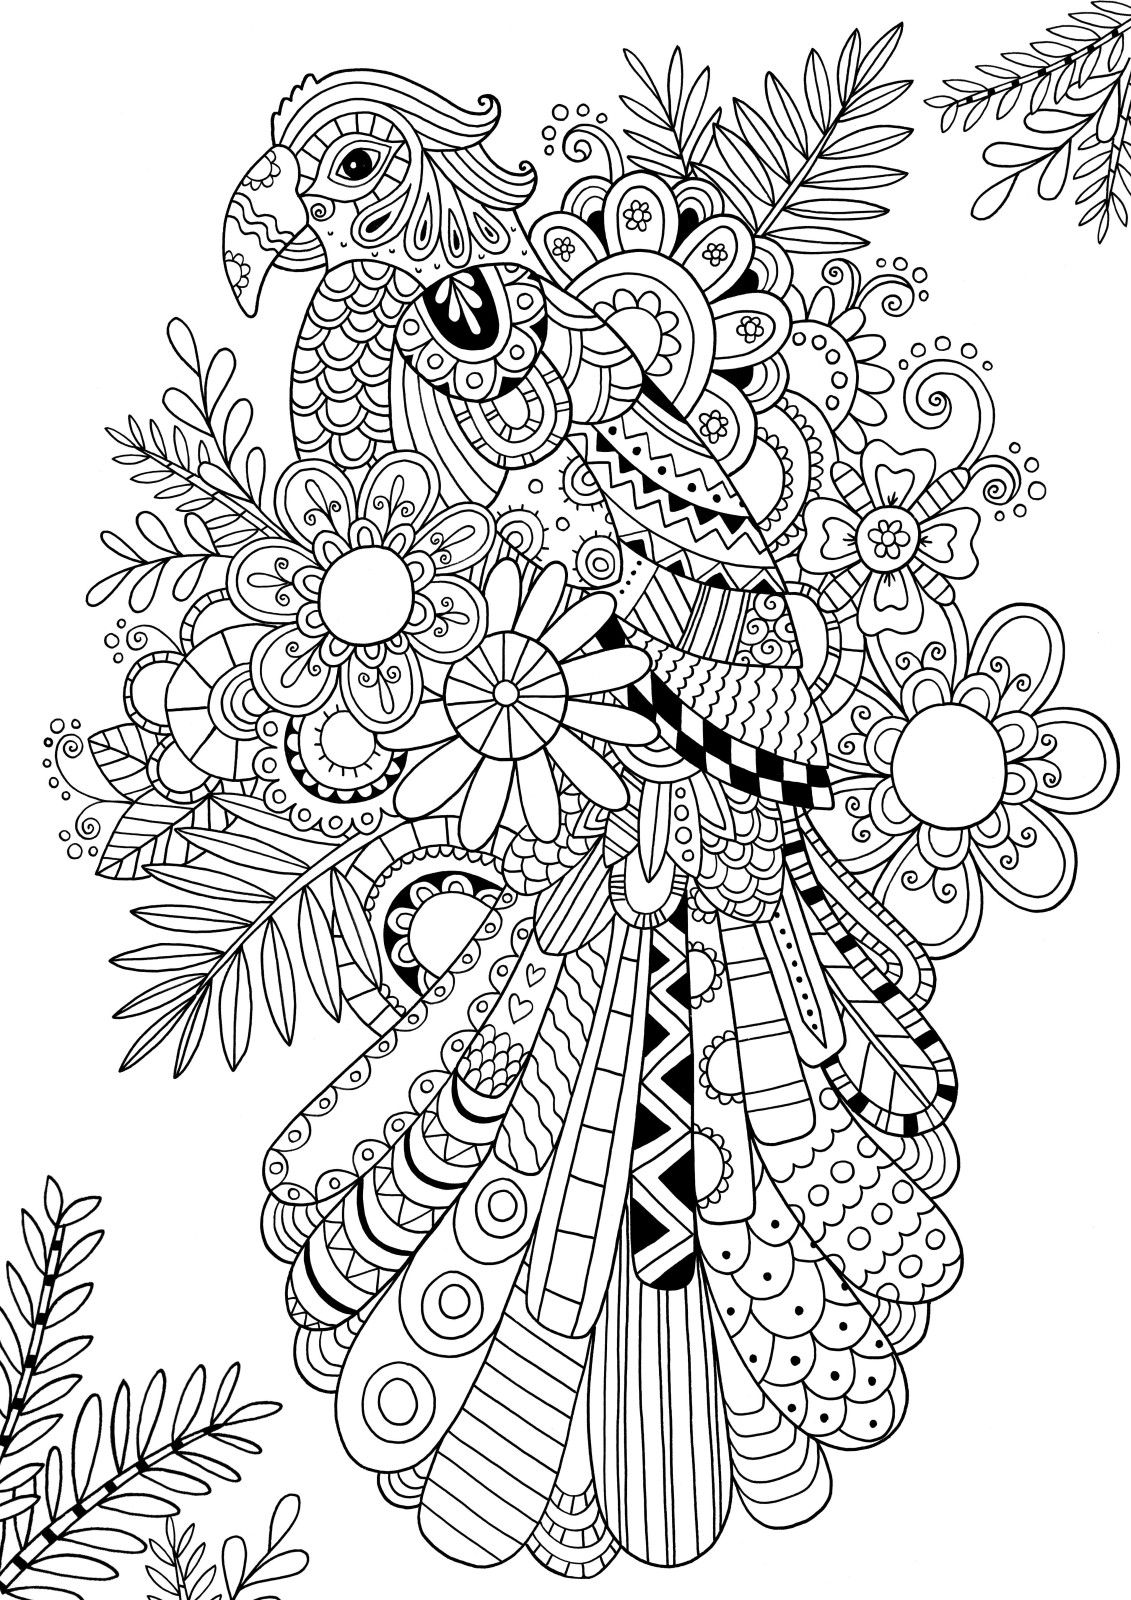 how to draw zentangle patterns adult coloring pagescoloring - How To Draw Coloring Pages